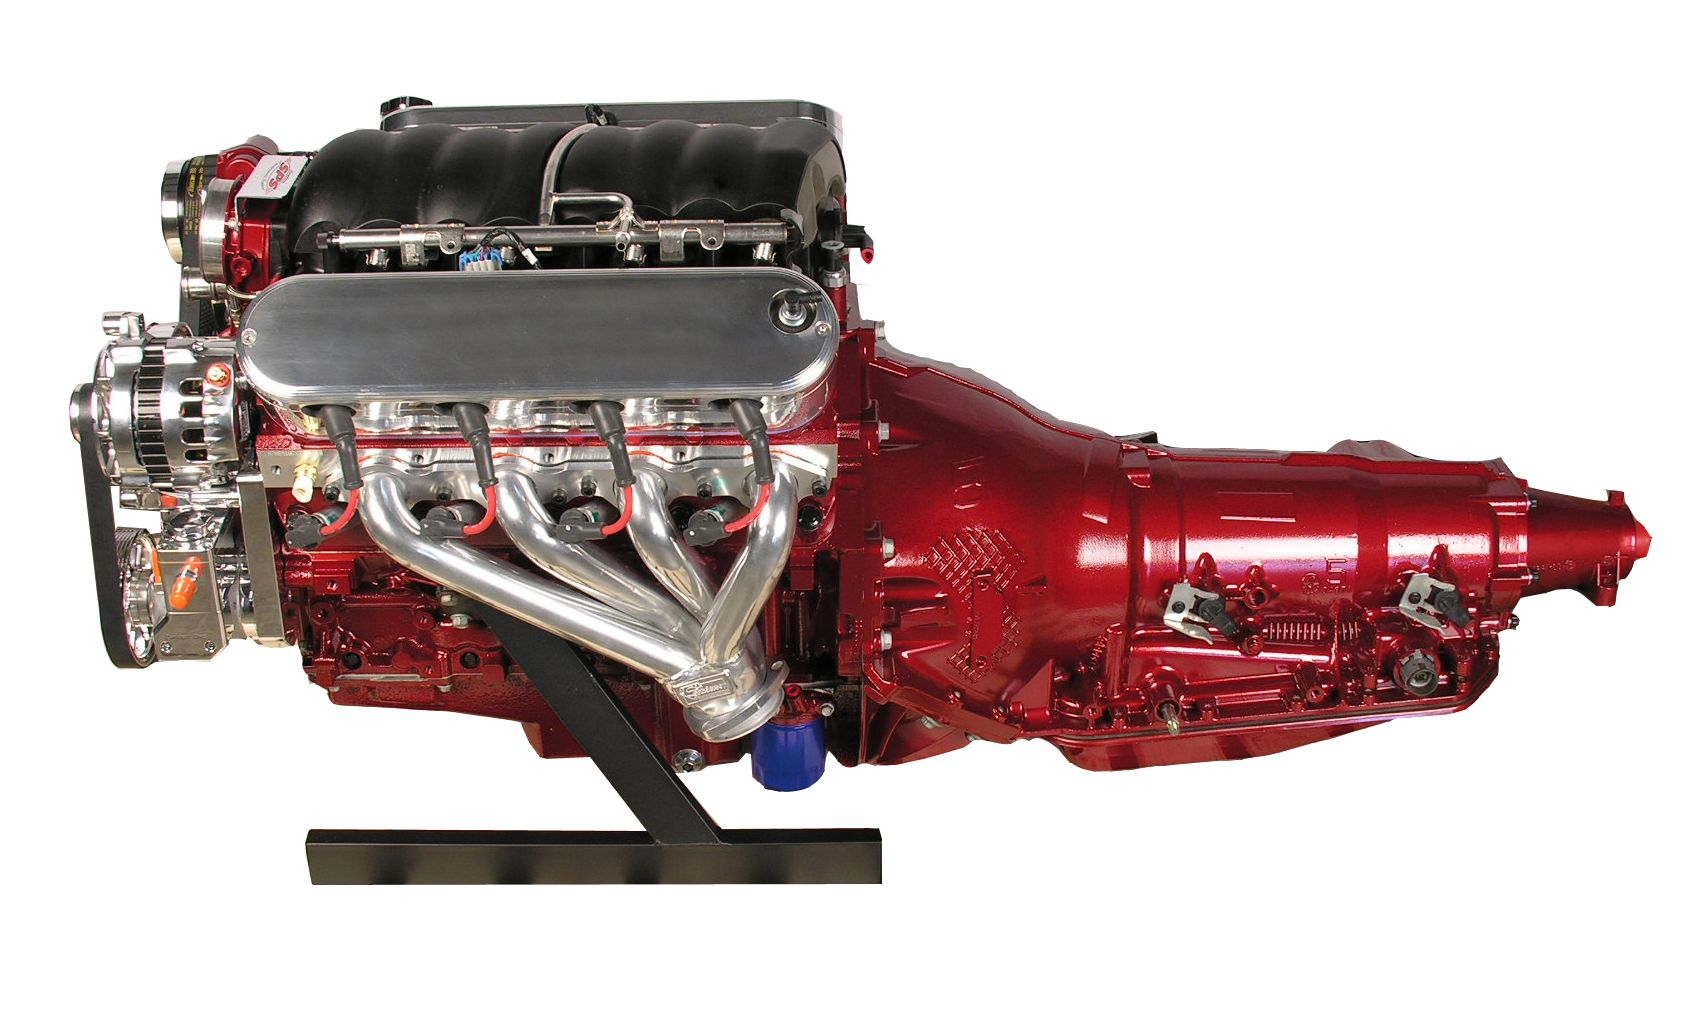 Ls3 Engine With 4l80e Transmission 480 Hp Deep Red Paint